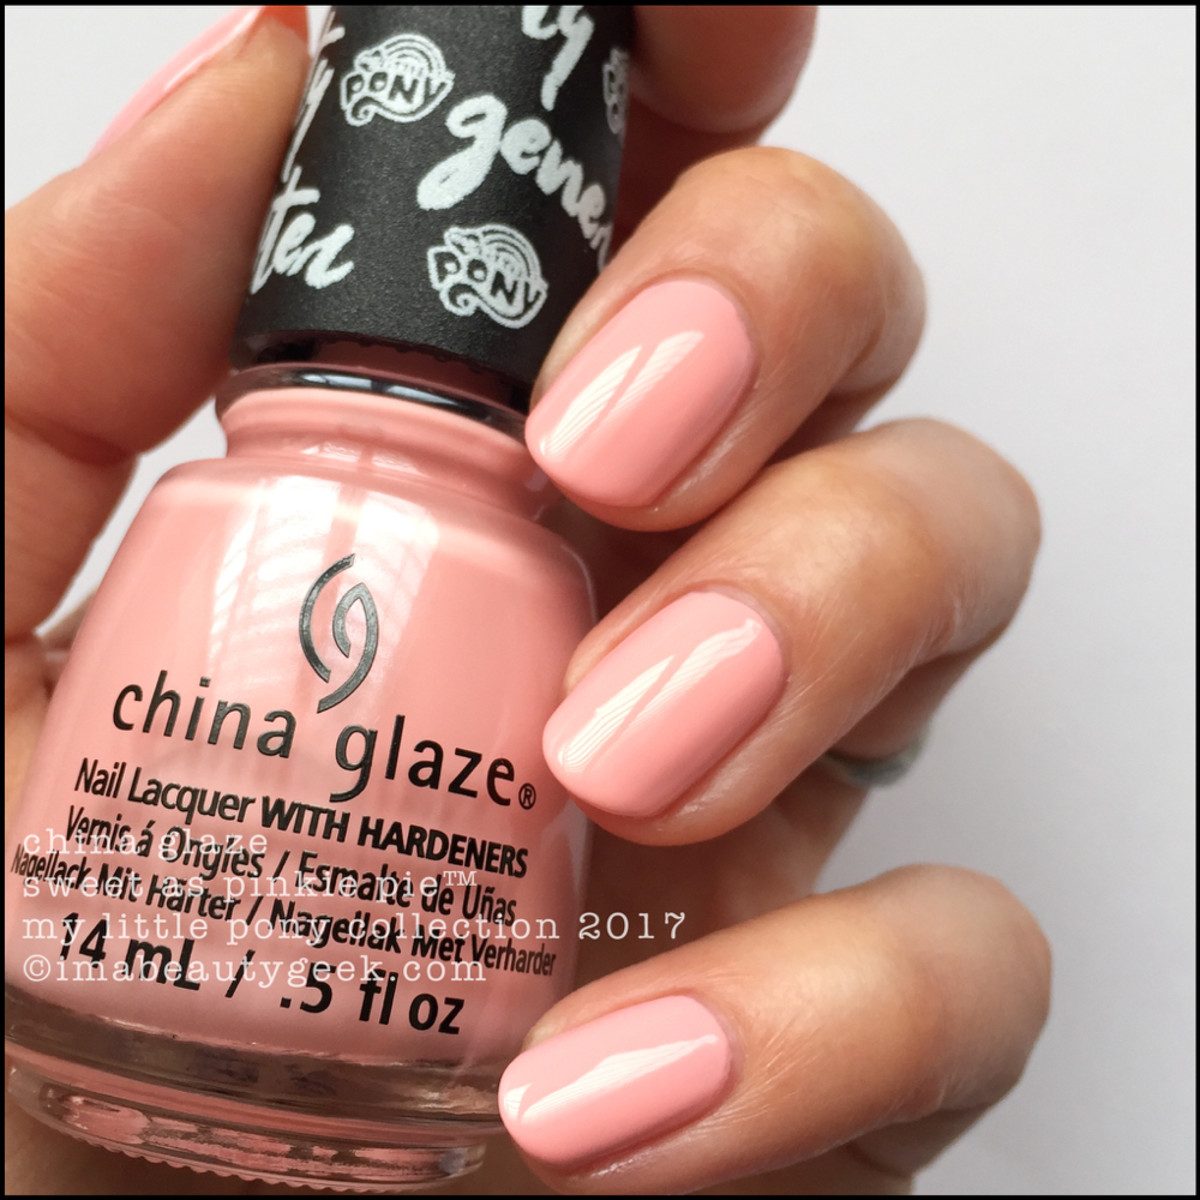 China Glaze Sweet as Pinkie Pie - My Little Pony Collection 2017